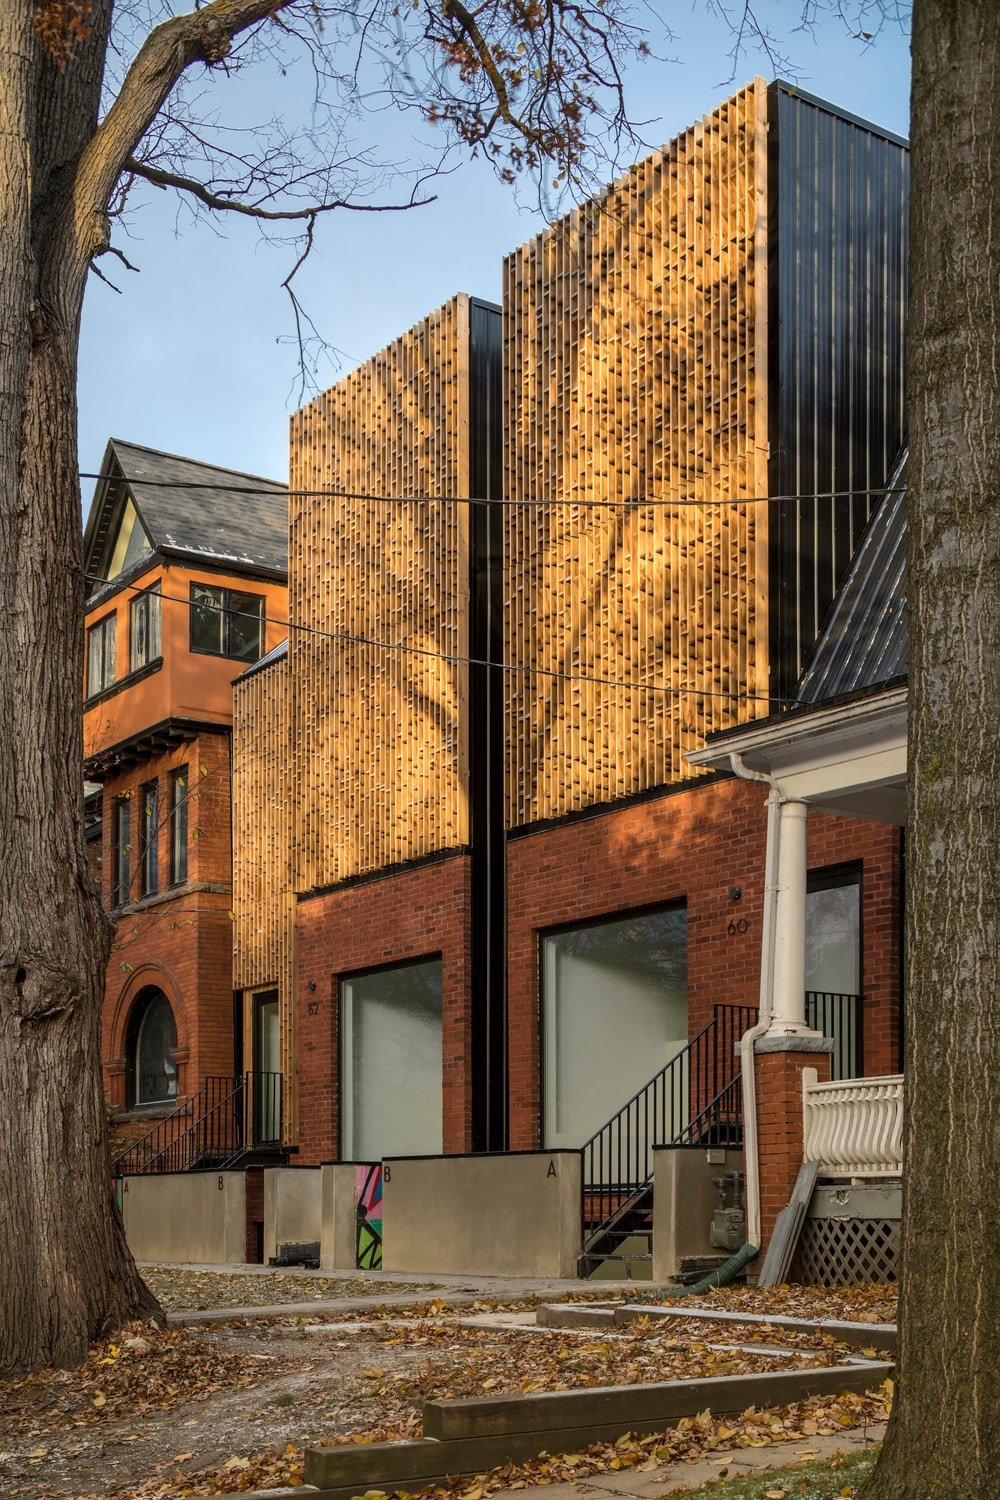 This is a look at the exteriors of the modern house showcasing the concrete low wall at the front contrasted by the brick facade of the base of the house.